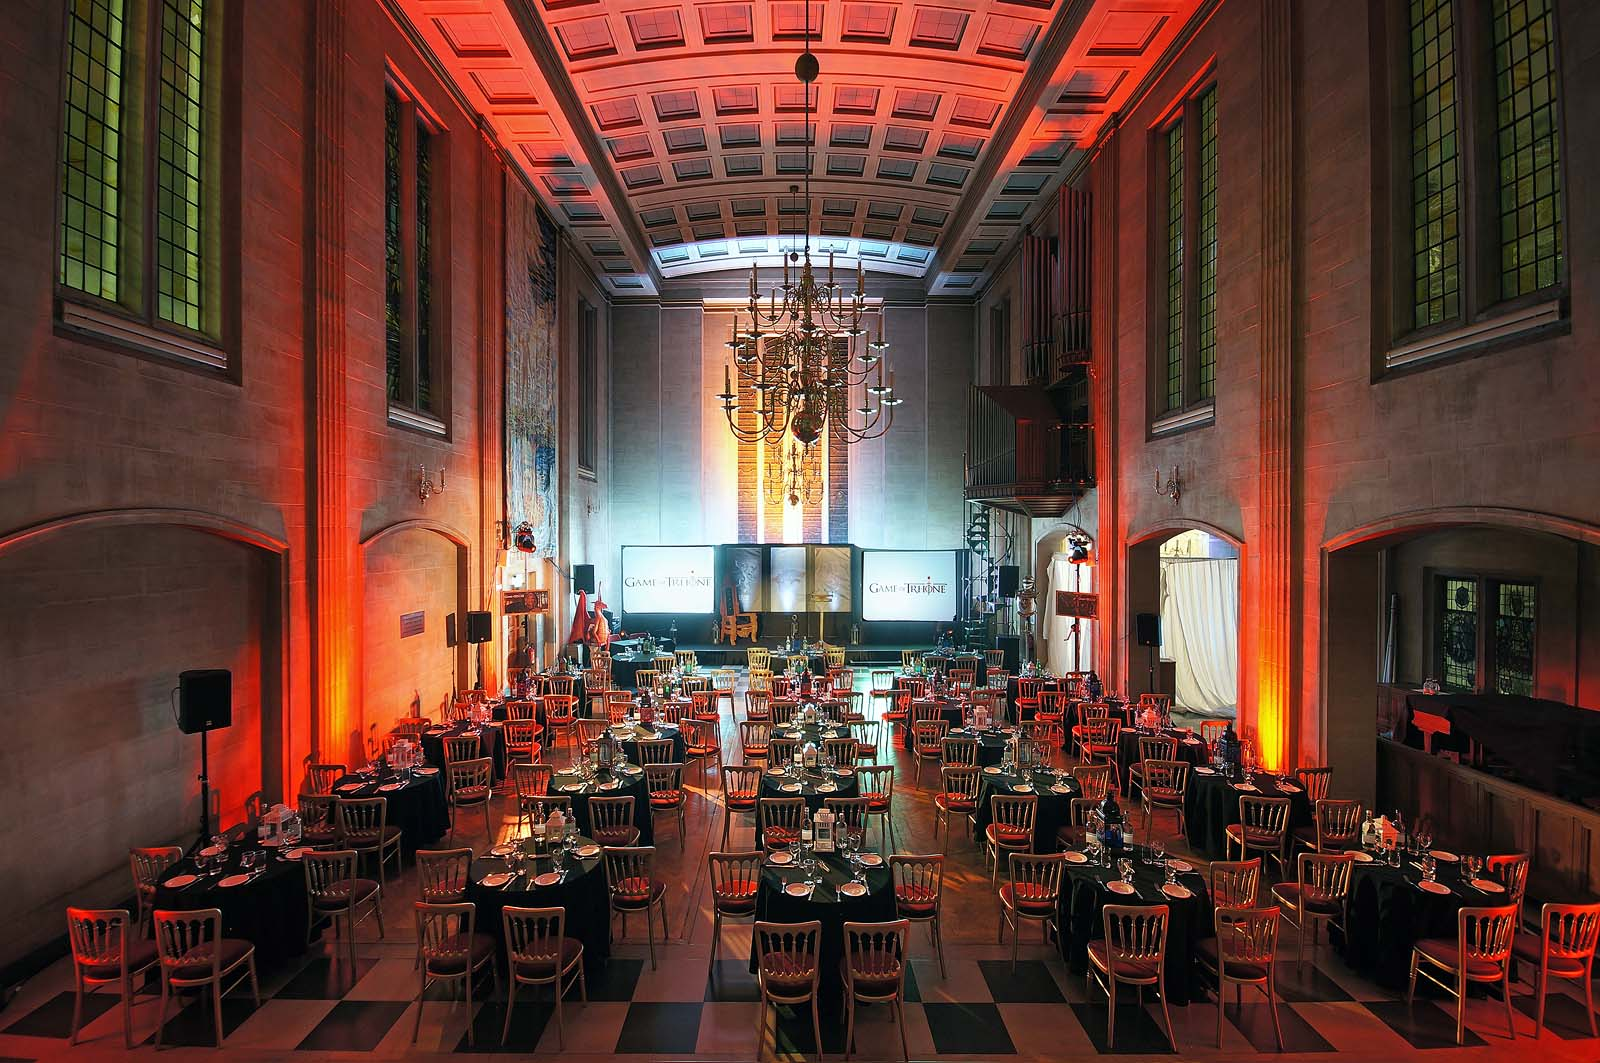 Seating for 200 guests in City of London event venue The Dutch Hall